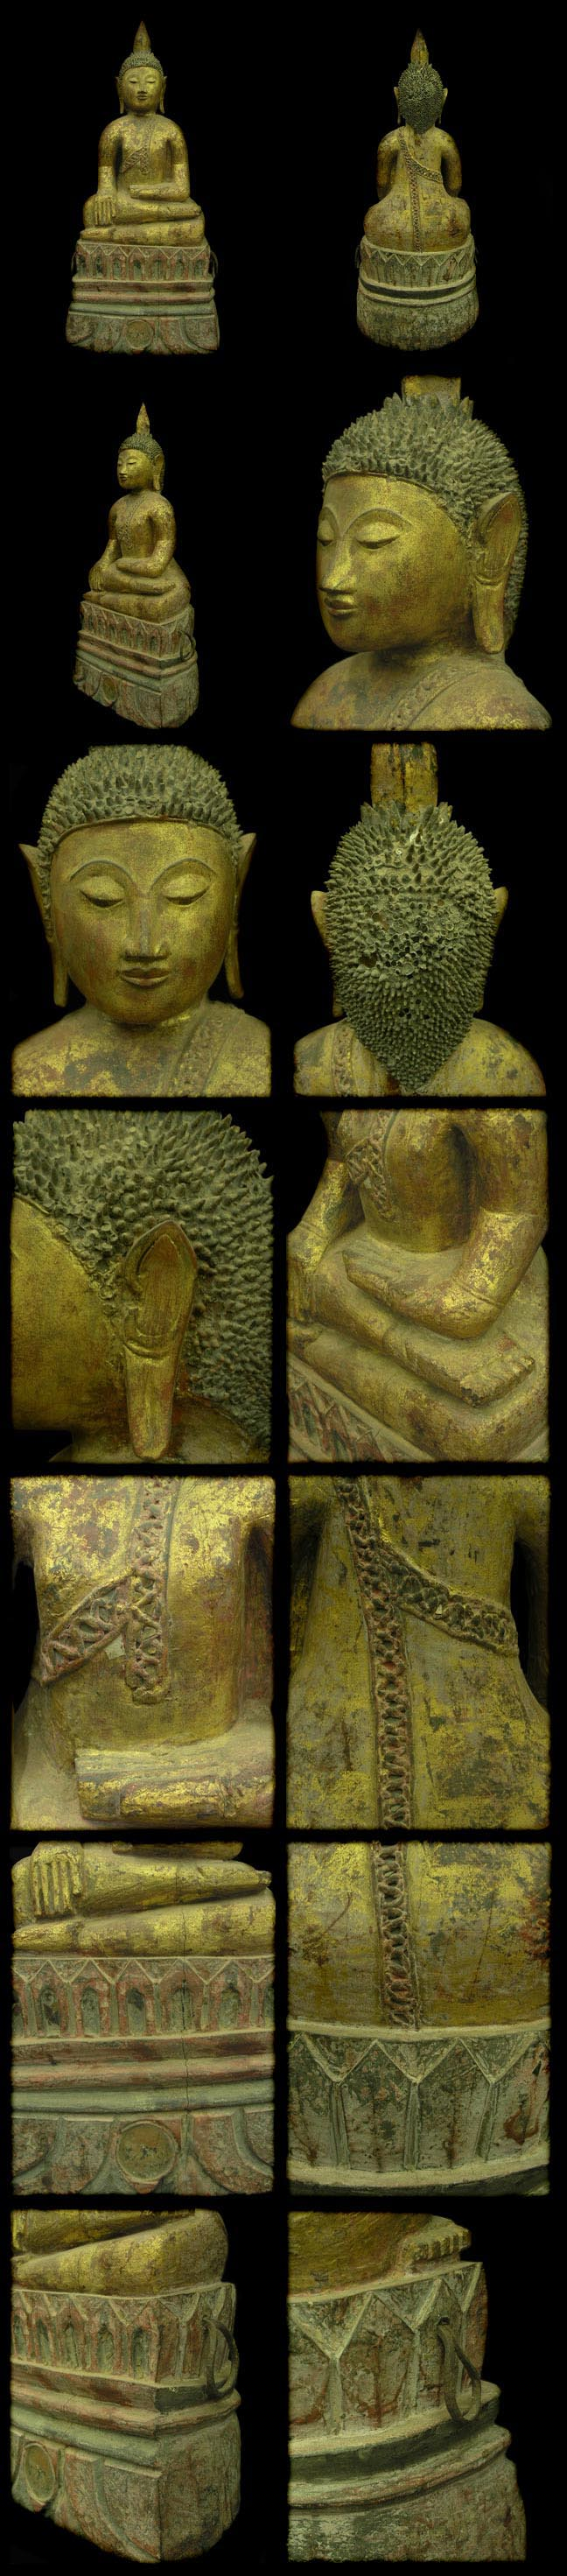 Extremely Rare 19C Wood Asian Laos Buddha #AL.917